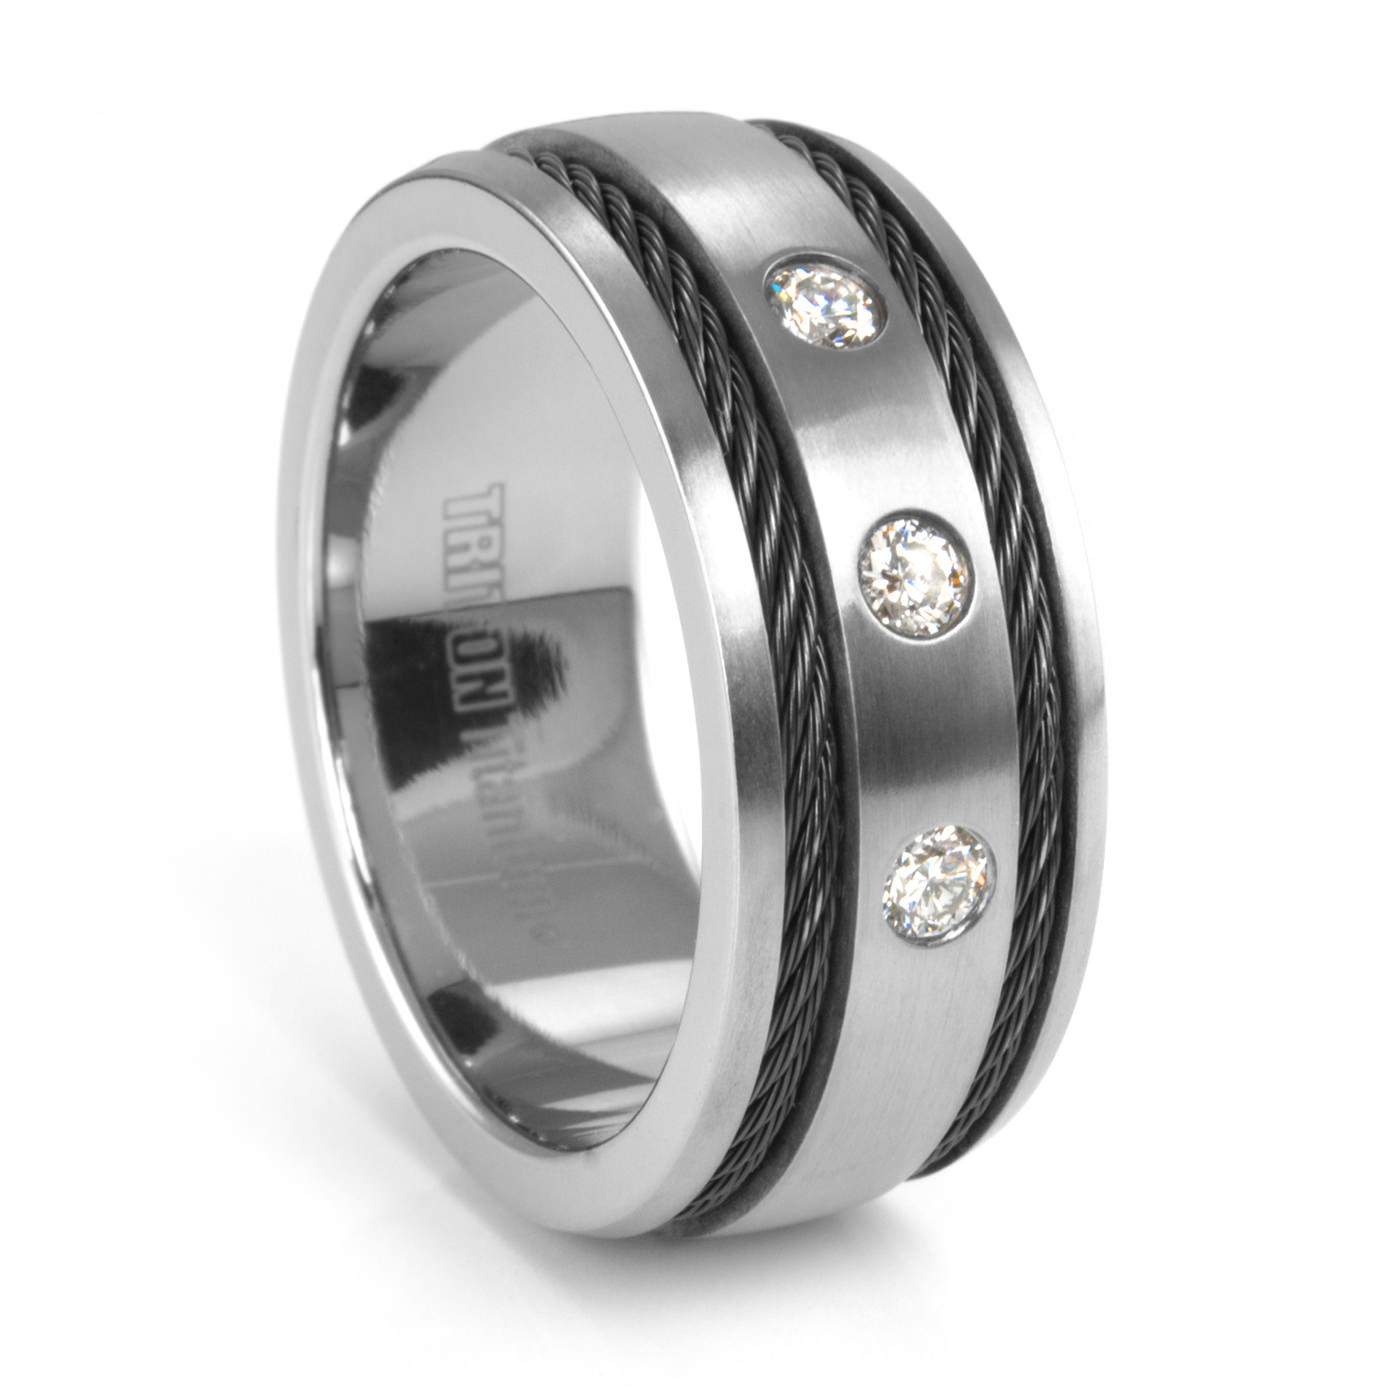 Fenton Mens Titanium Diamond Wedding Band